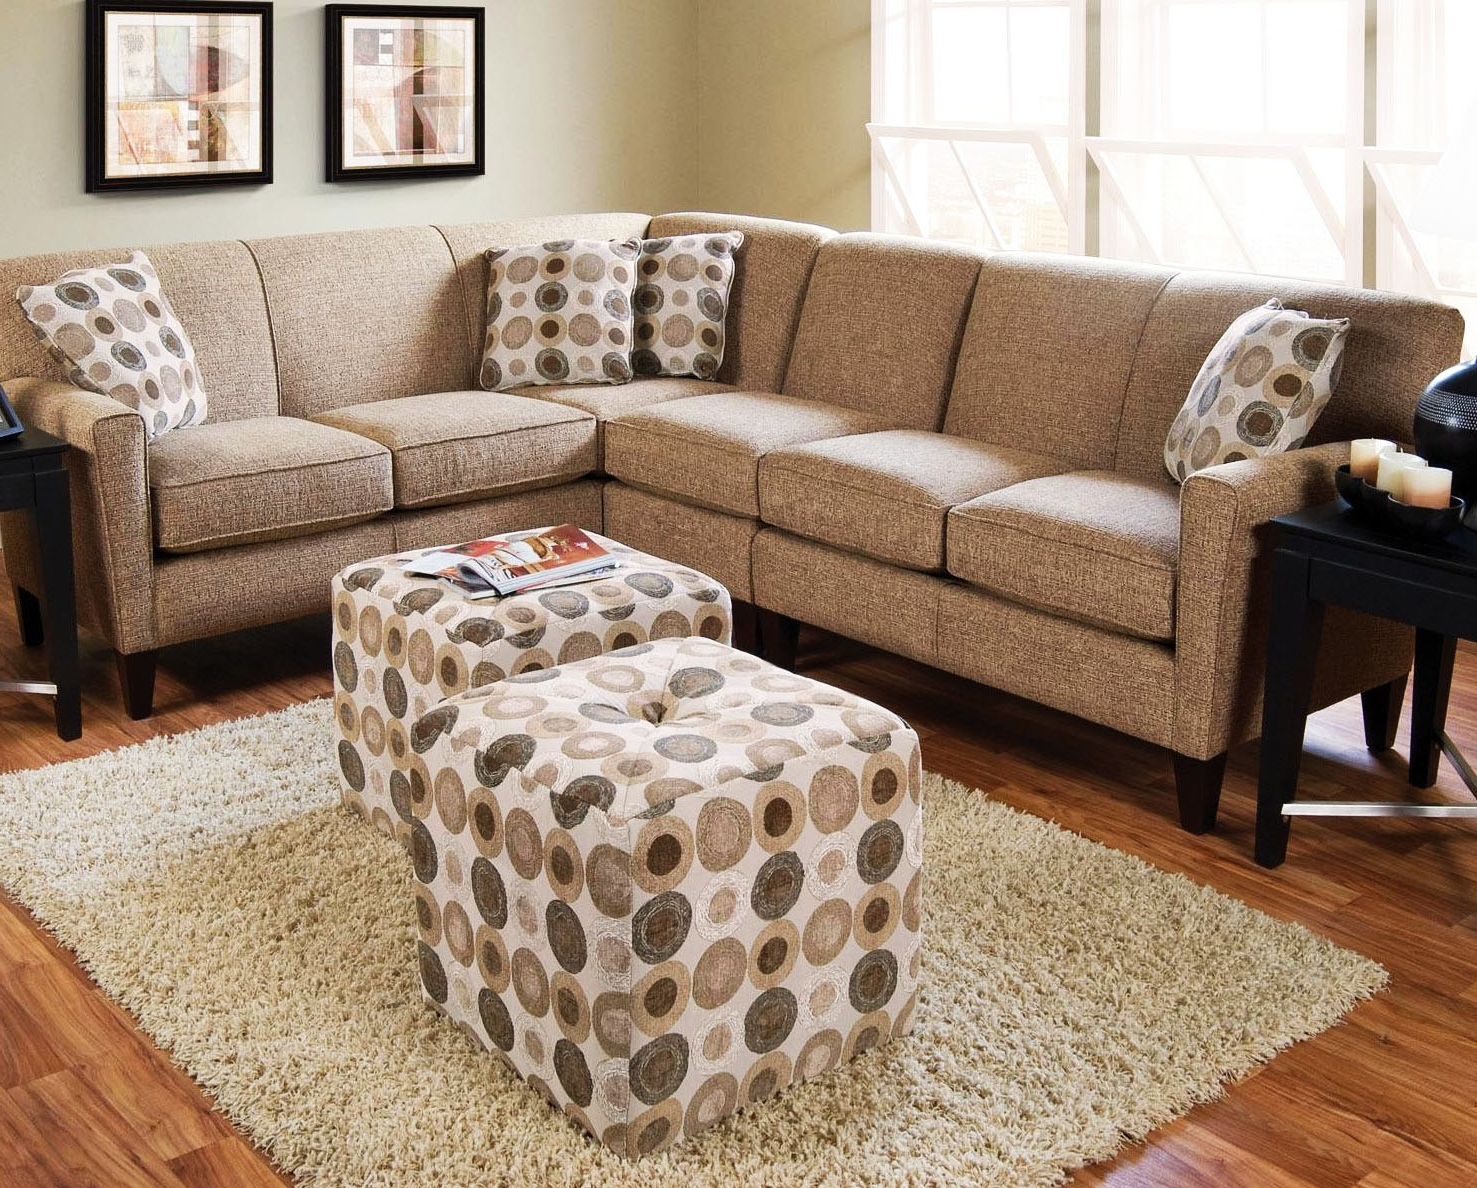 Sectional Sleeper Sofa With Recliners Fabric Sectional Sleeper Regarding Most Recently Released Small Sectional Sofas For Small Spaces (View 10 of 20)